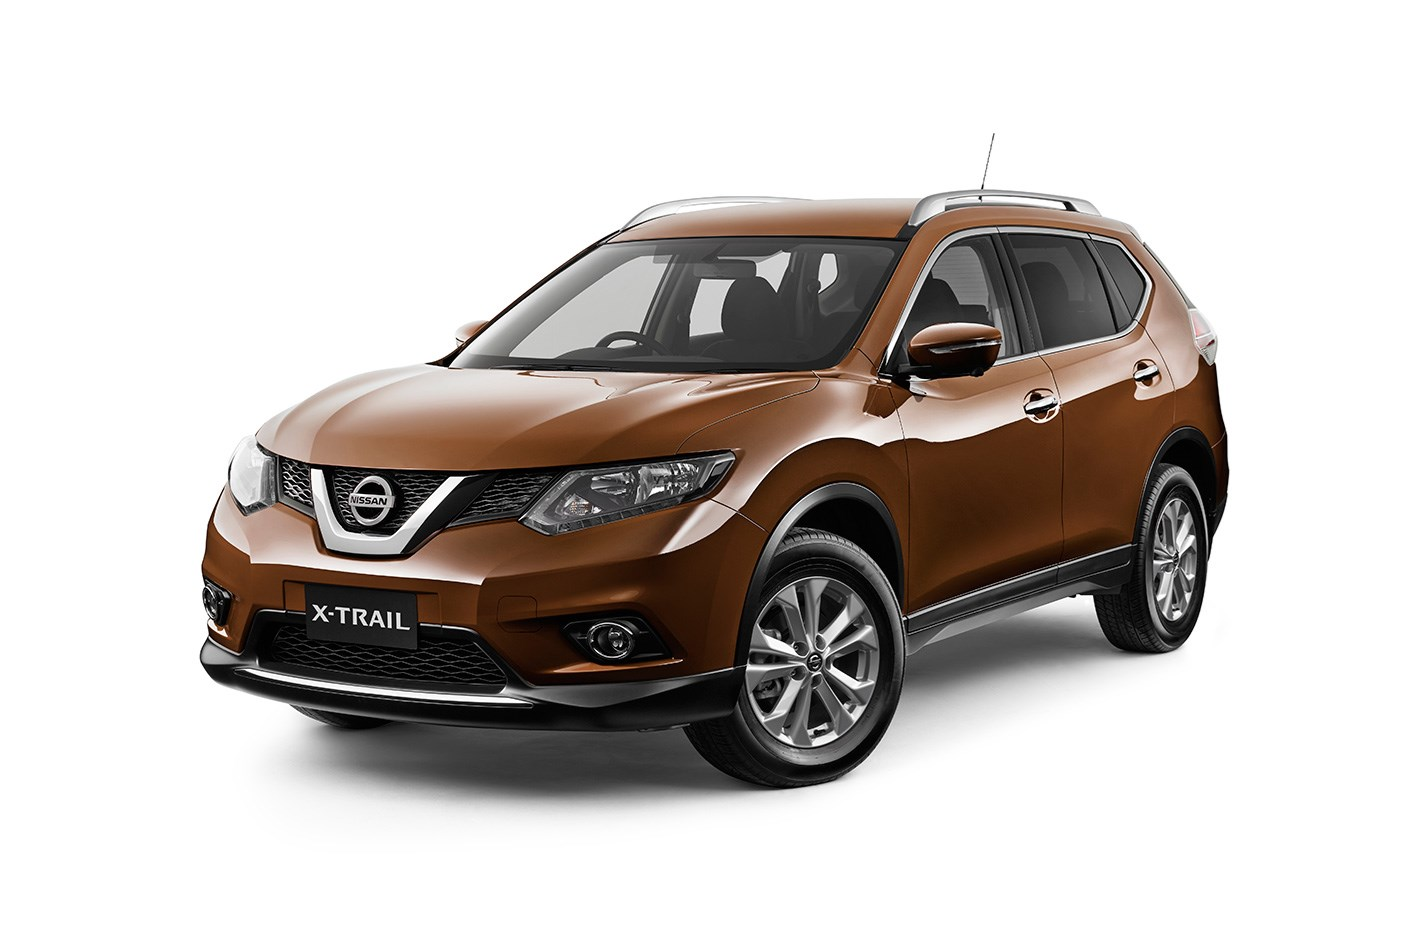 brand new 2016 nissan x trail 2 5l cvt 4wd selling for see pictures autos nigeria. Black Bedroom Furniture Sets. Home Design Ideas